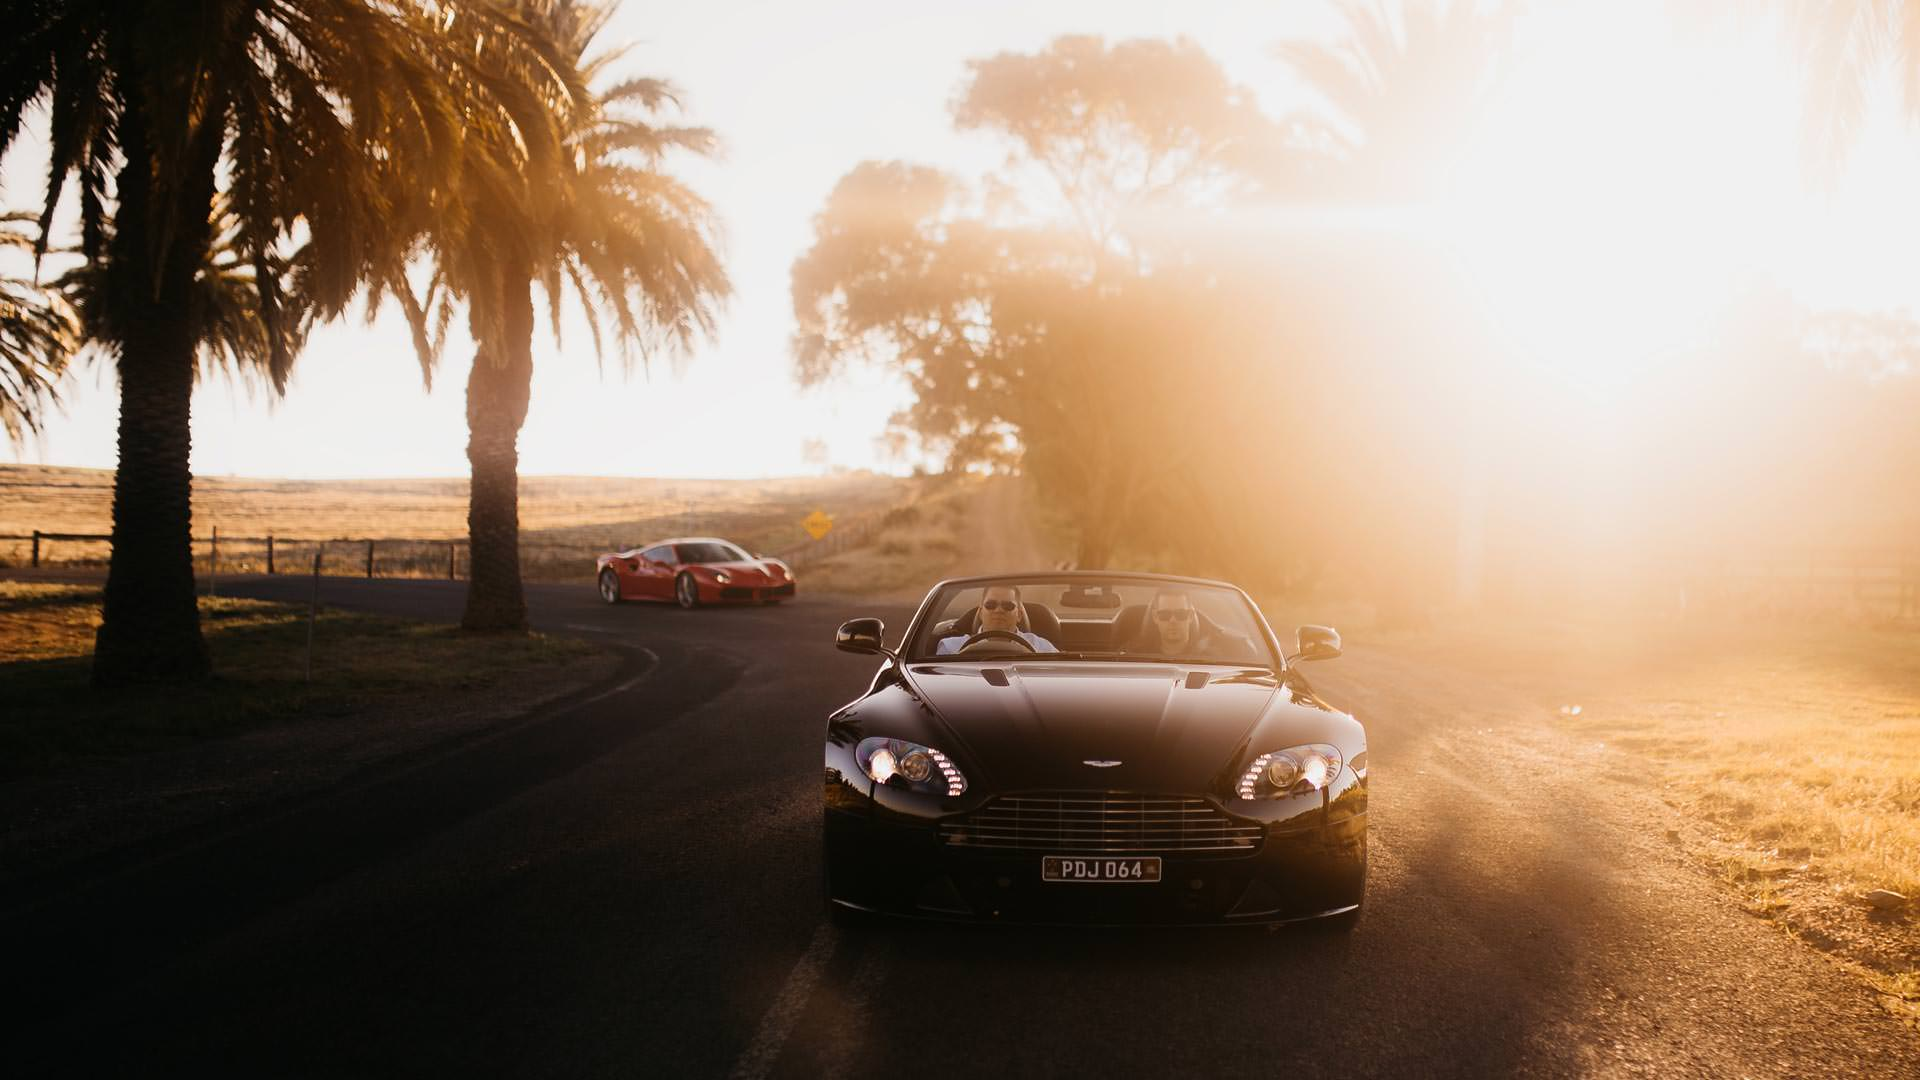 Aston Martin Supercar Driving Experience - Adelaide Hills and Barossa Valley South Australia 2019